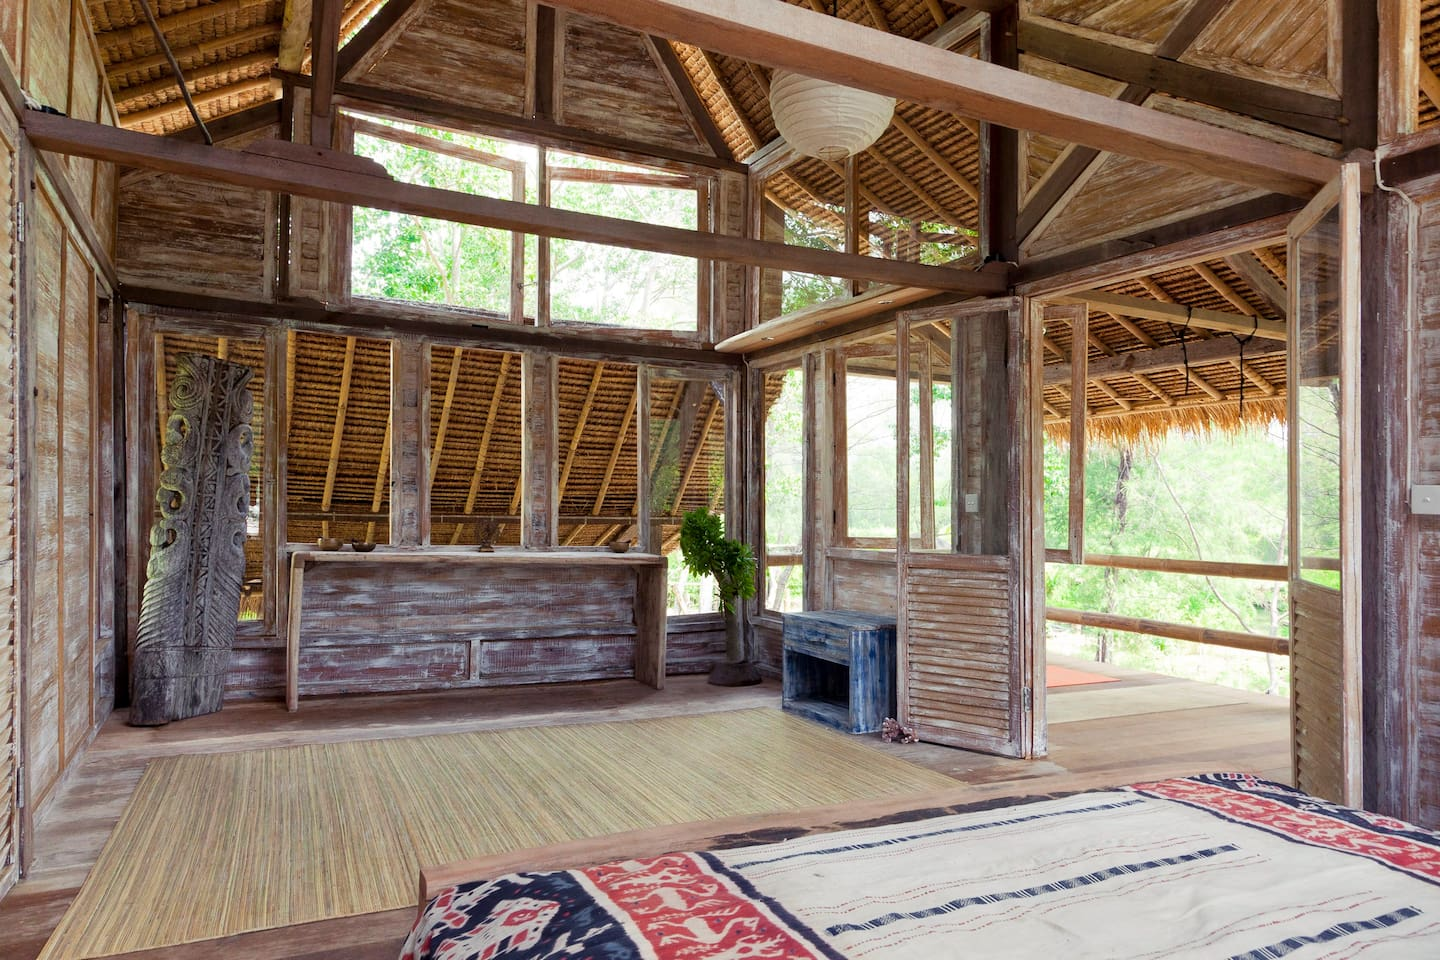 View of the room and veranda